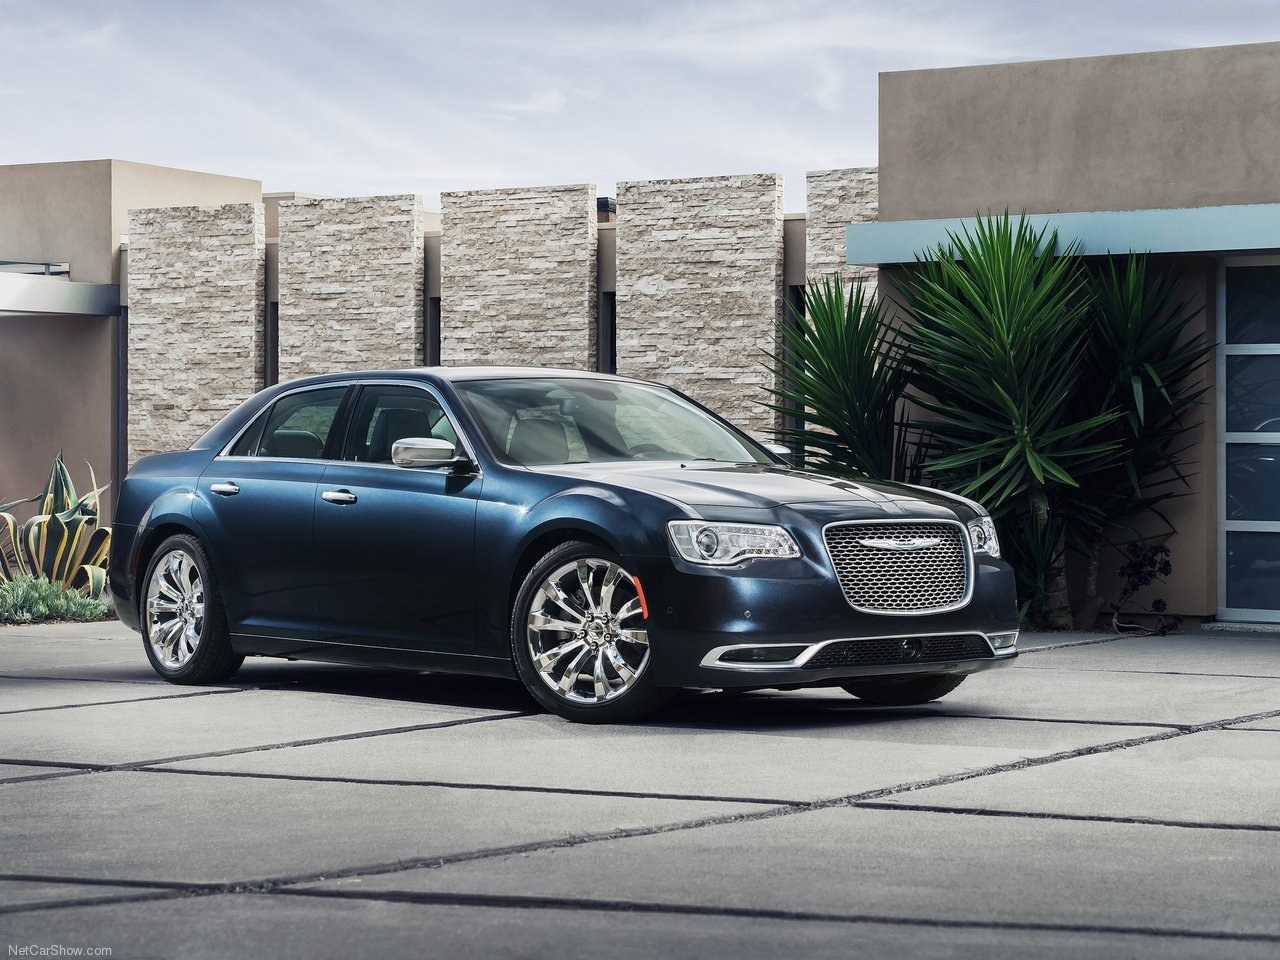 Chrysler 300 photo 141611